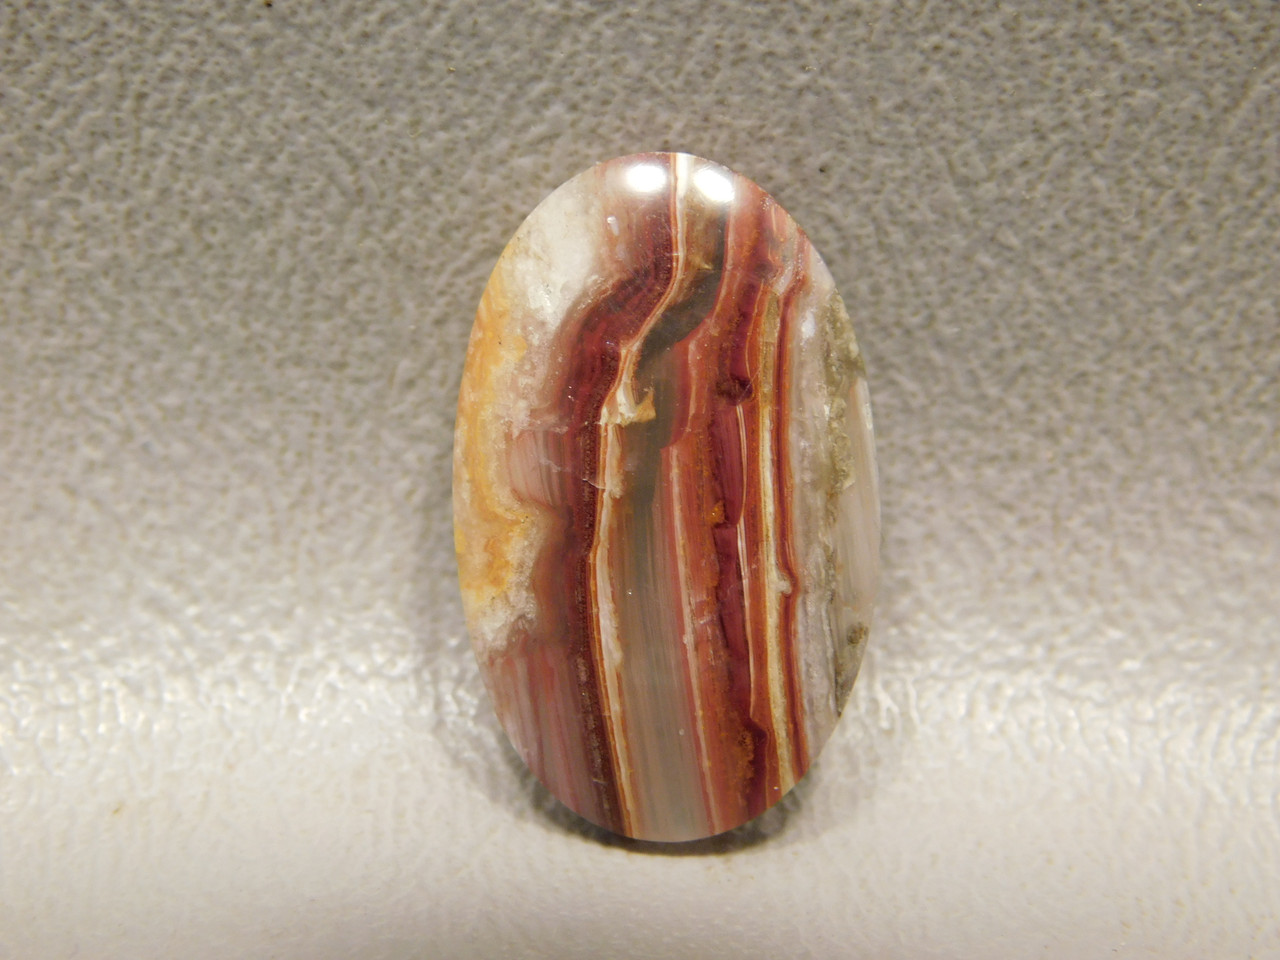 Candy Opal or Bacon Opal Cabochon Loose Stone #22